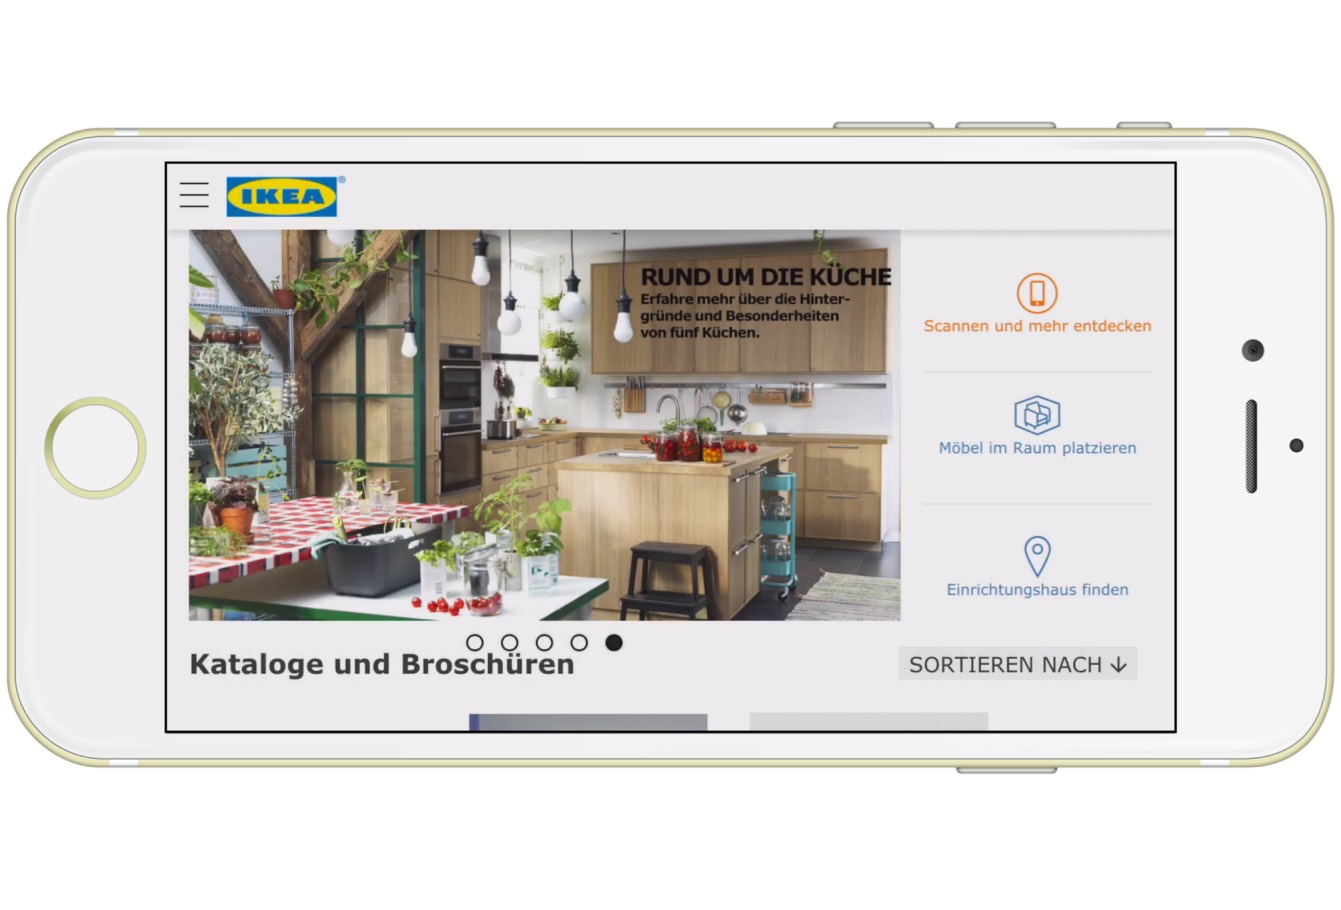 Ikea Küche Download Ikea App Für Android Ipad Und Iphone Infos Download